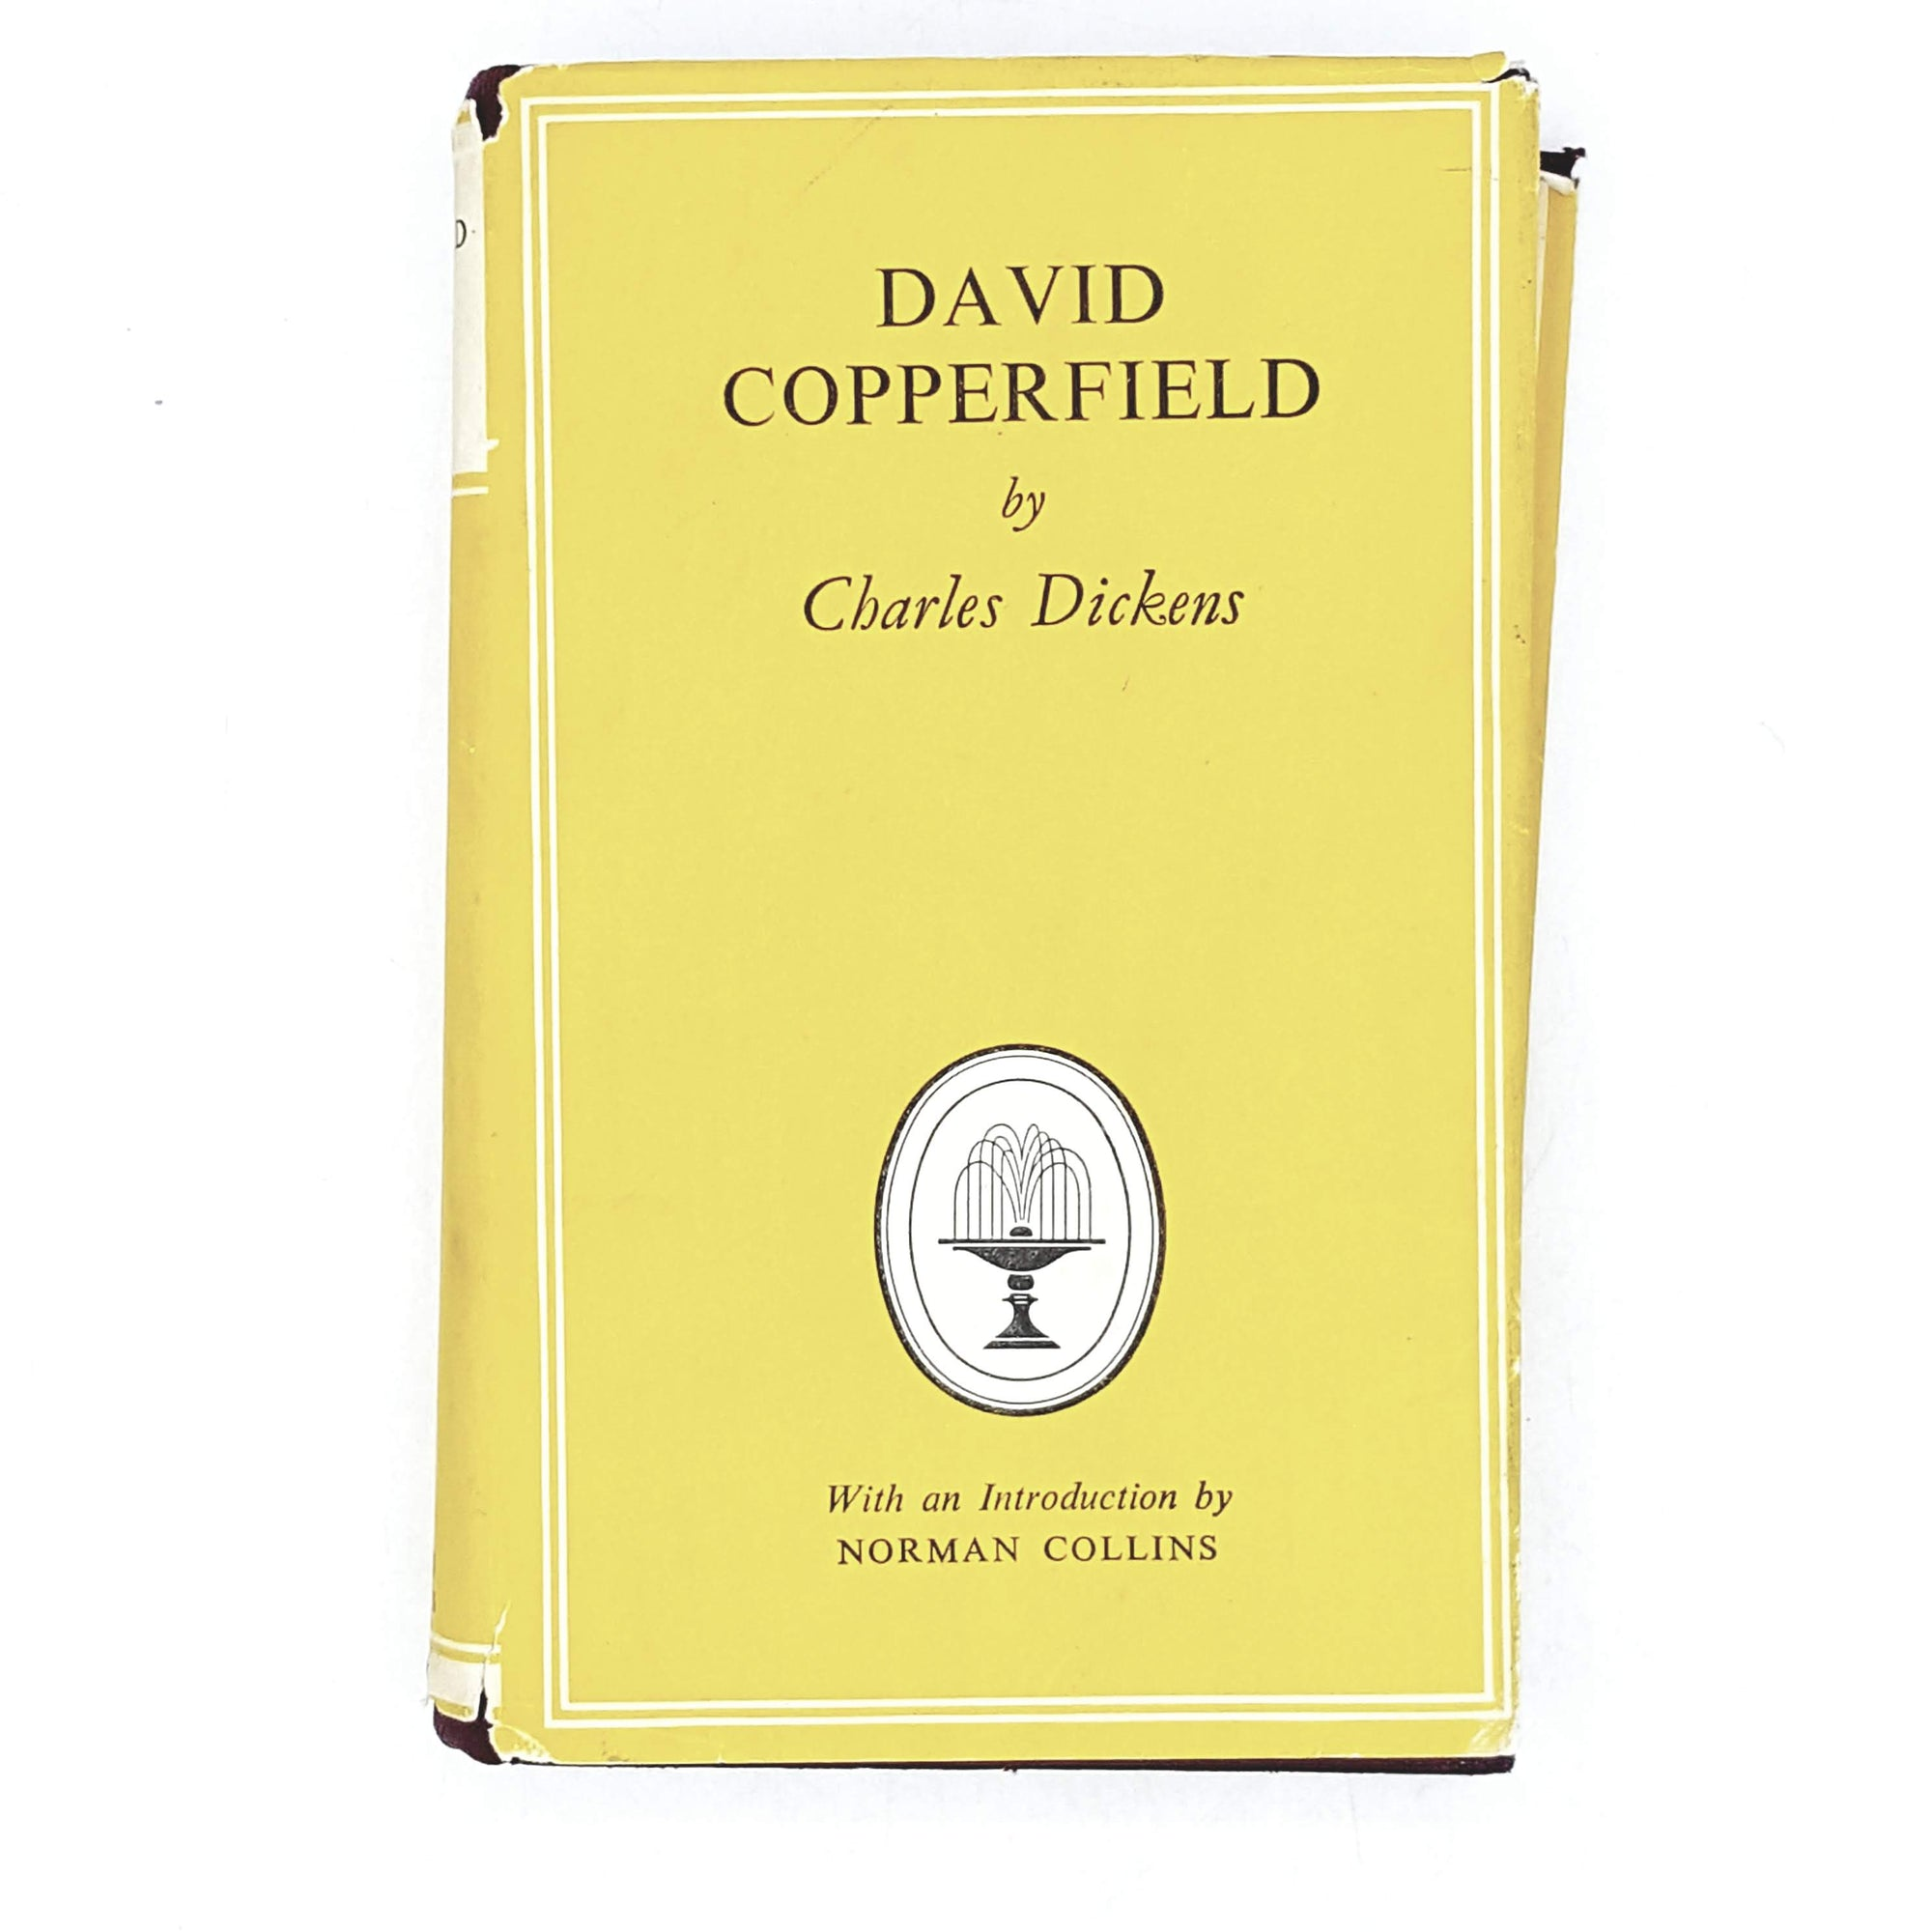 charles-dickens-david-copperfield-yellow-classic-country-house-library